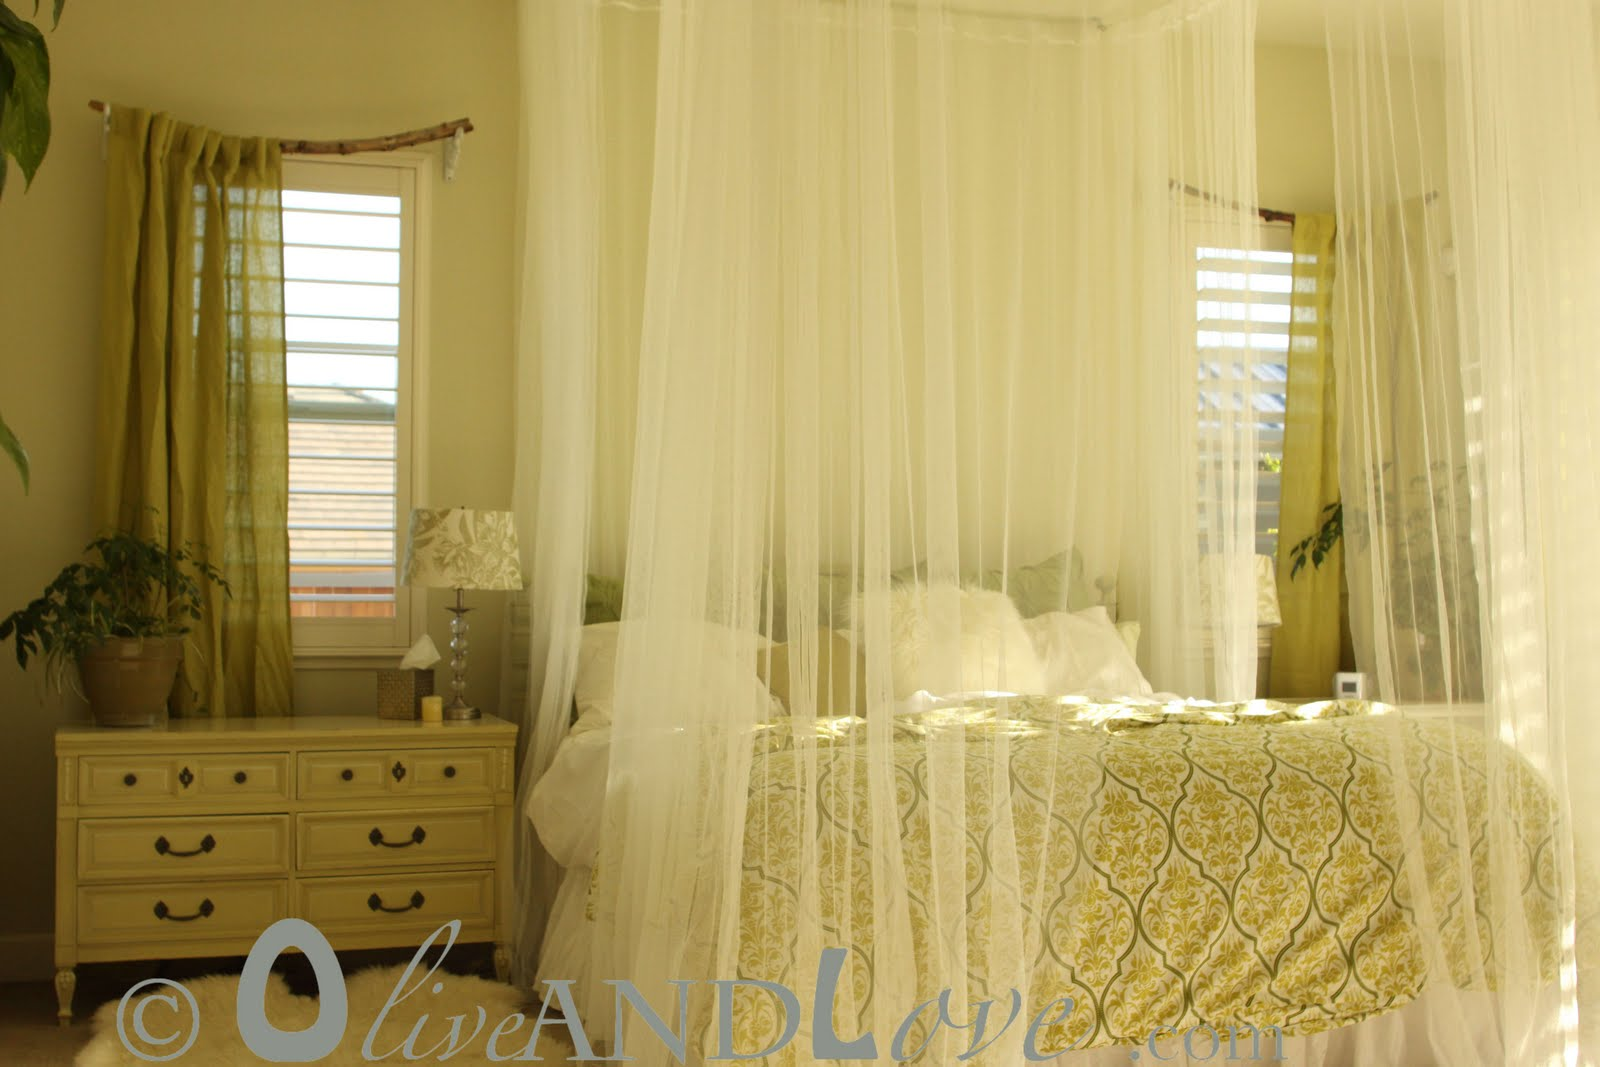 Bedroom Canopy Curtains olive and love: ceiling mounted bed canopy